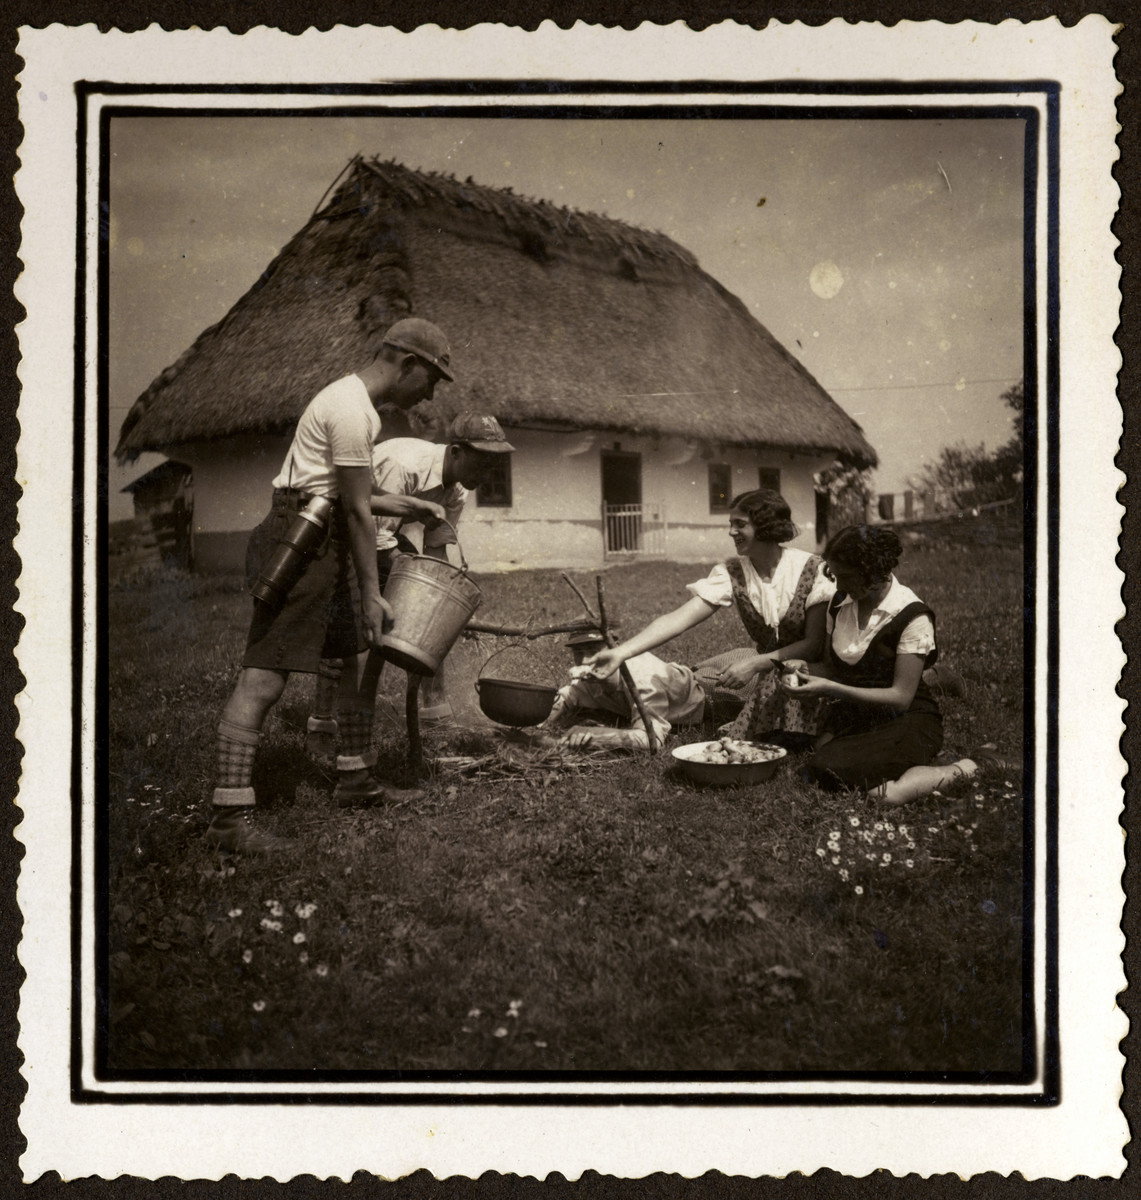 Four Romanian Jewish youth cook a meal outdoors while on an excursion to the countryside.    Miriam Segal is third from left.